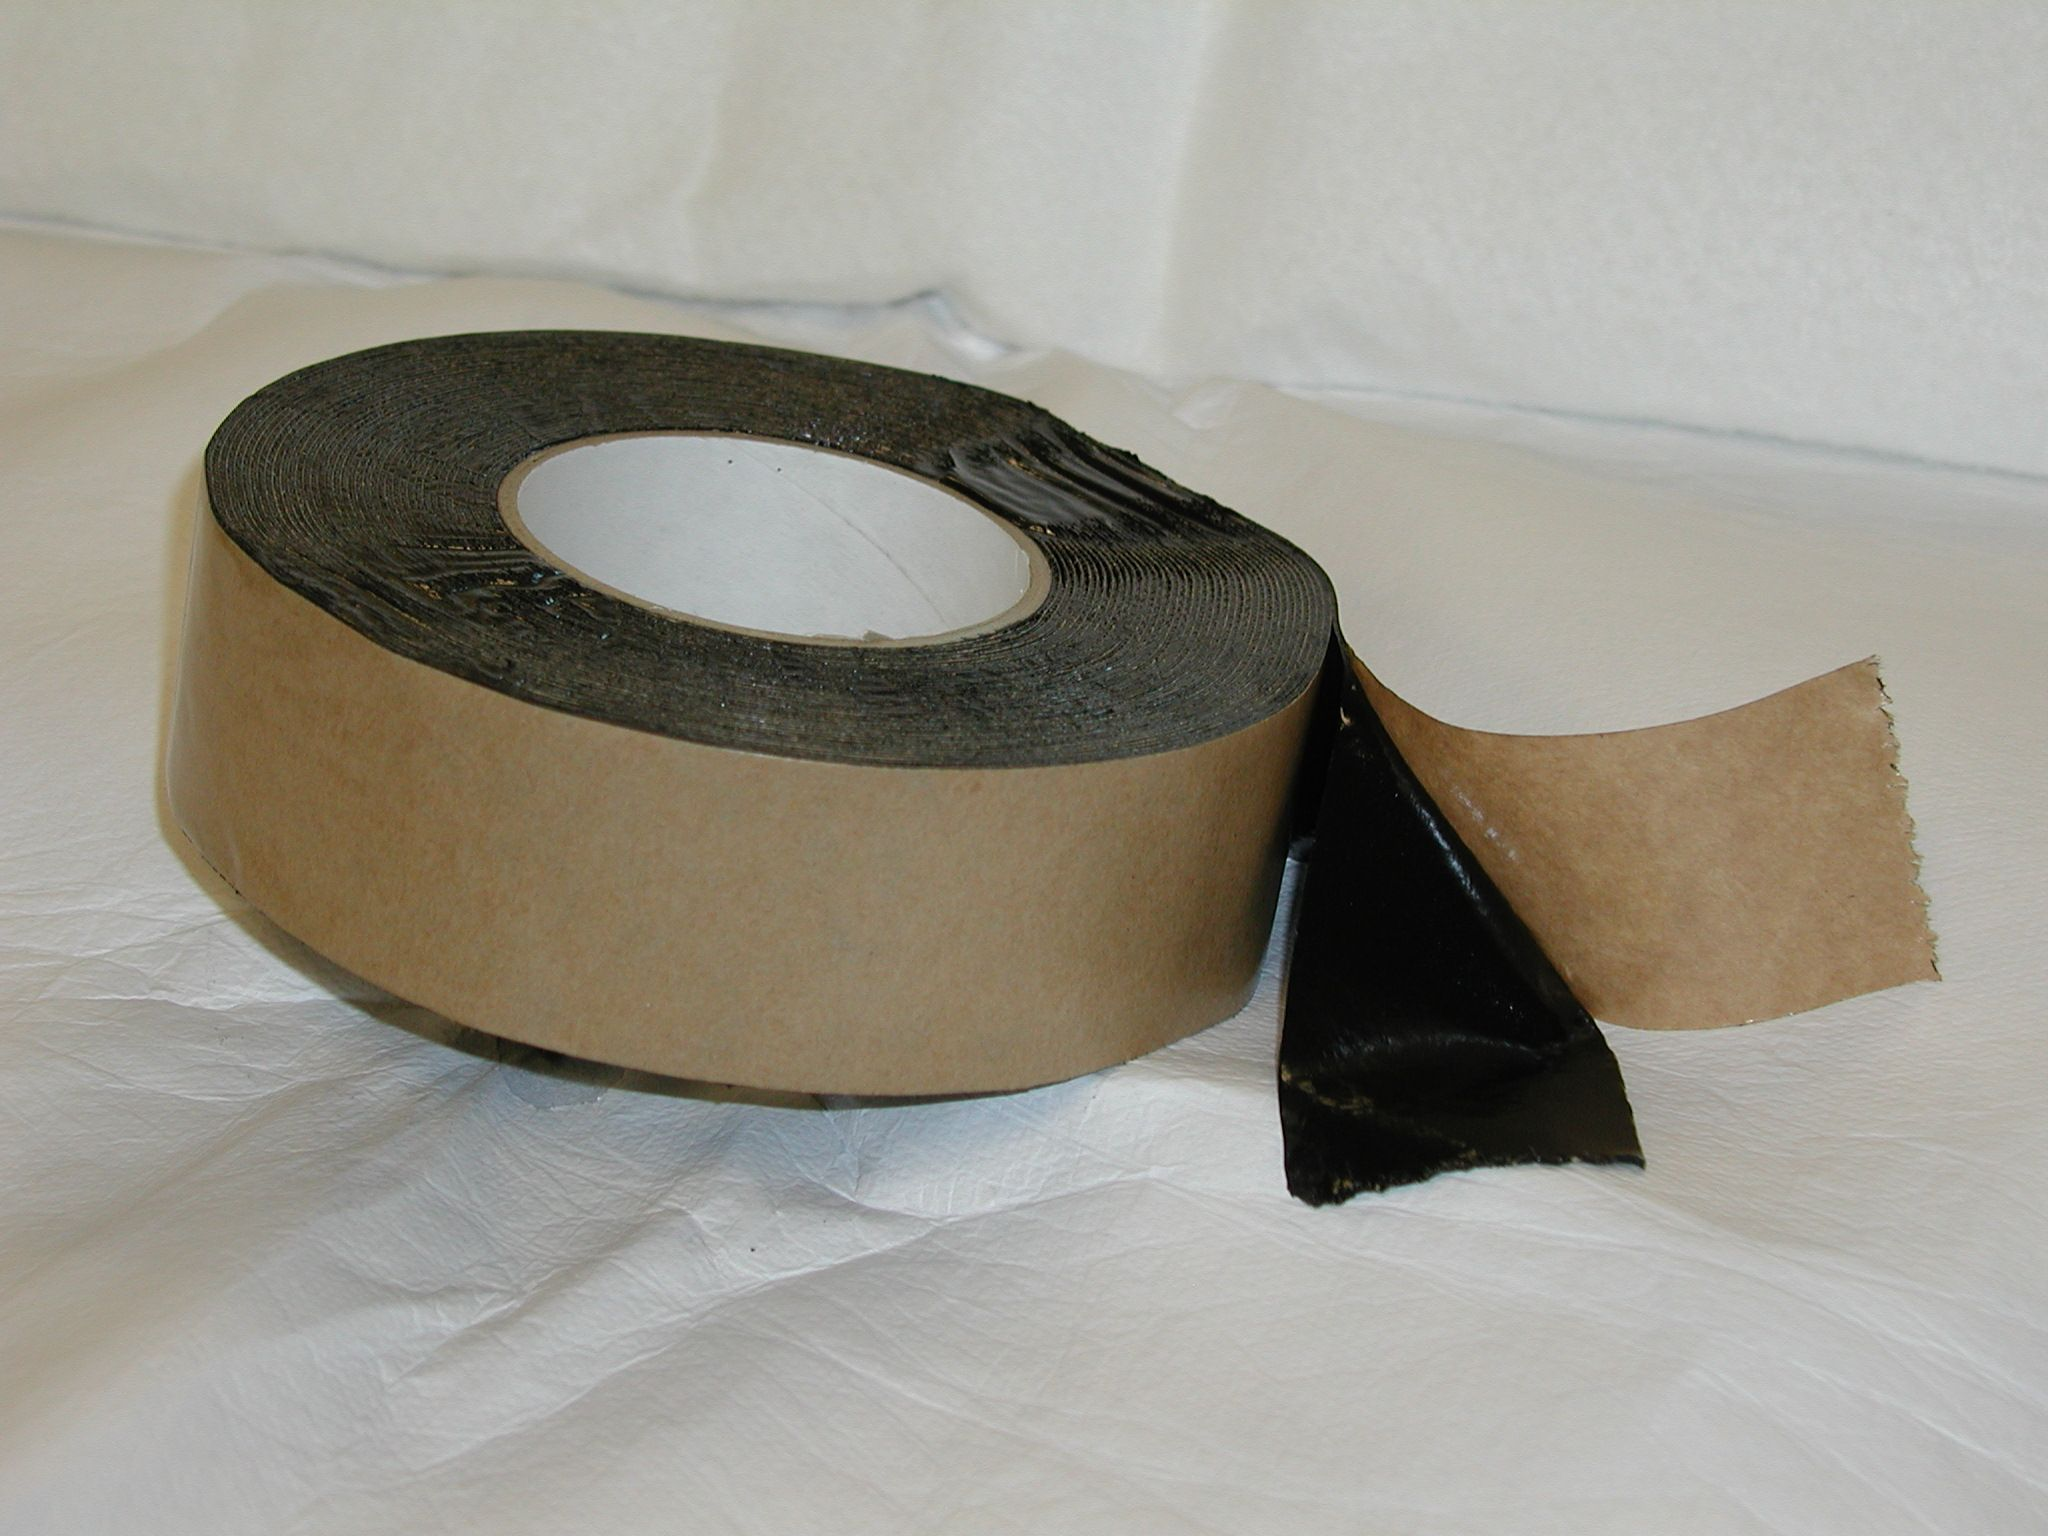 Butyl 2 Sided Rubber Tape Tape Accessories Butyl Tape Tape Crawl Space Encapsulation